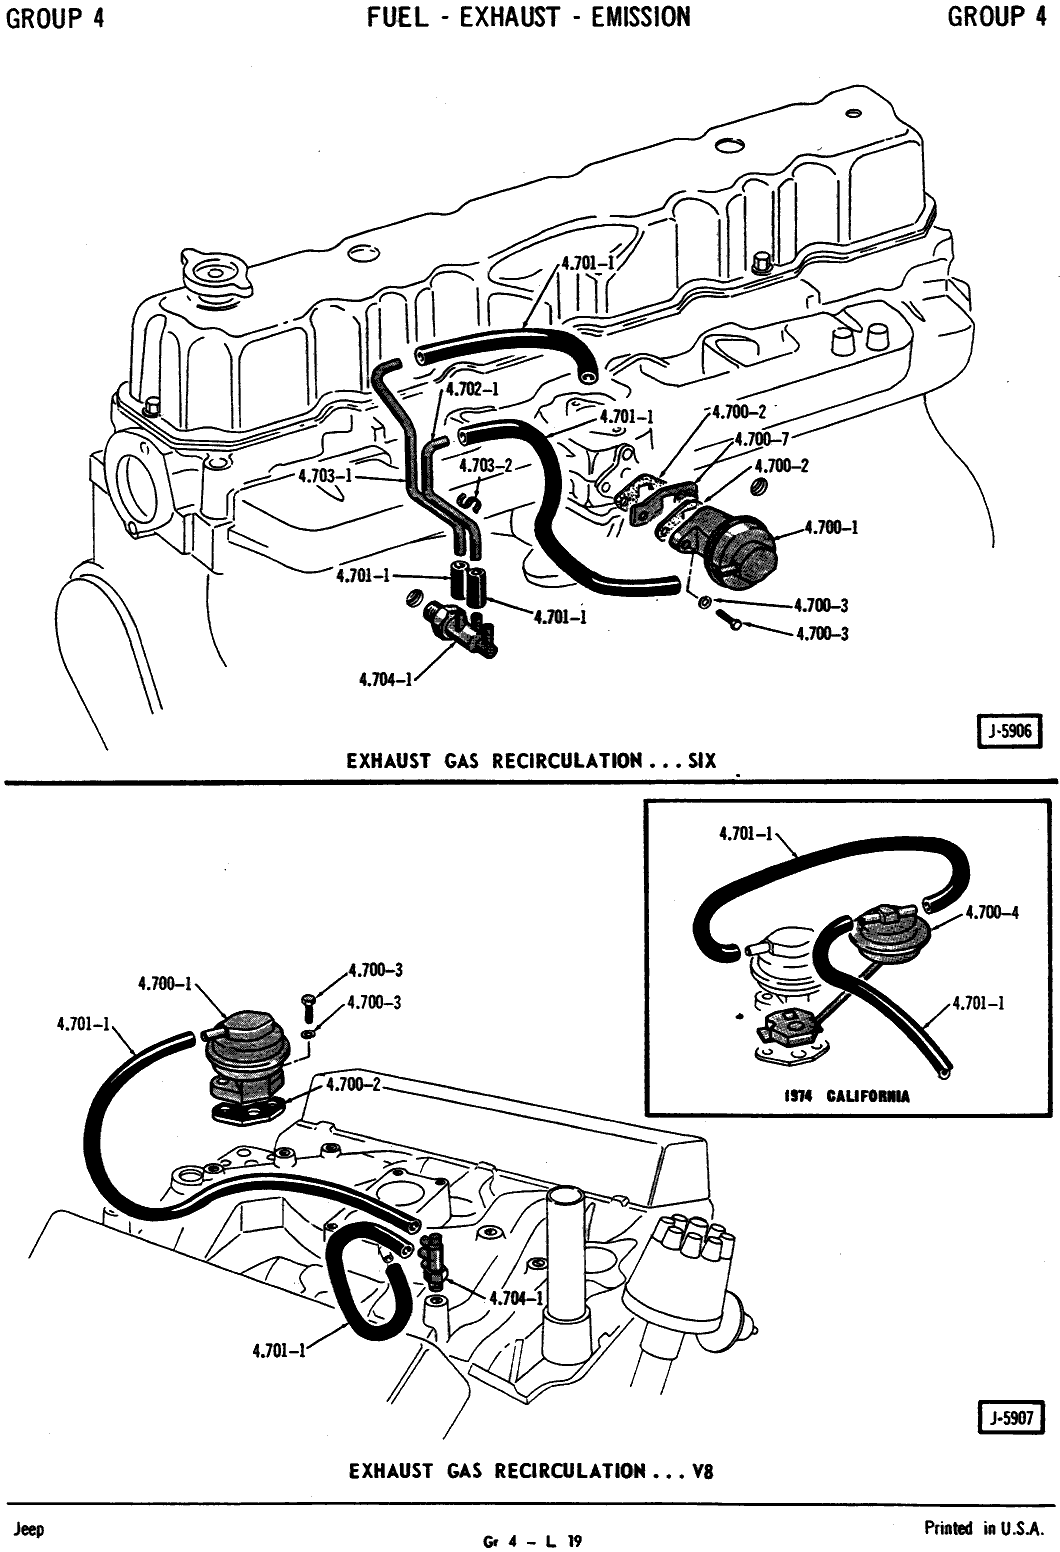 1998 Jeep Grand Cherokee Vacuum Hose Diagram Wiring Diagrams Hubs Peugeot 206 Fuse Box Heater 1997 Engine Manual E Books Electrical